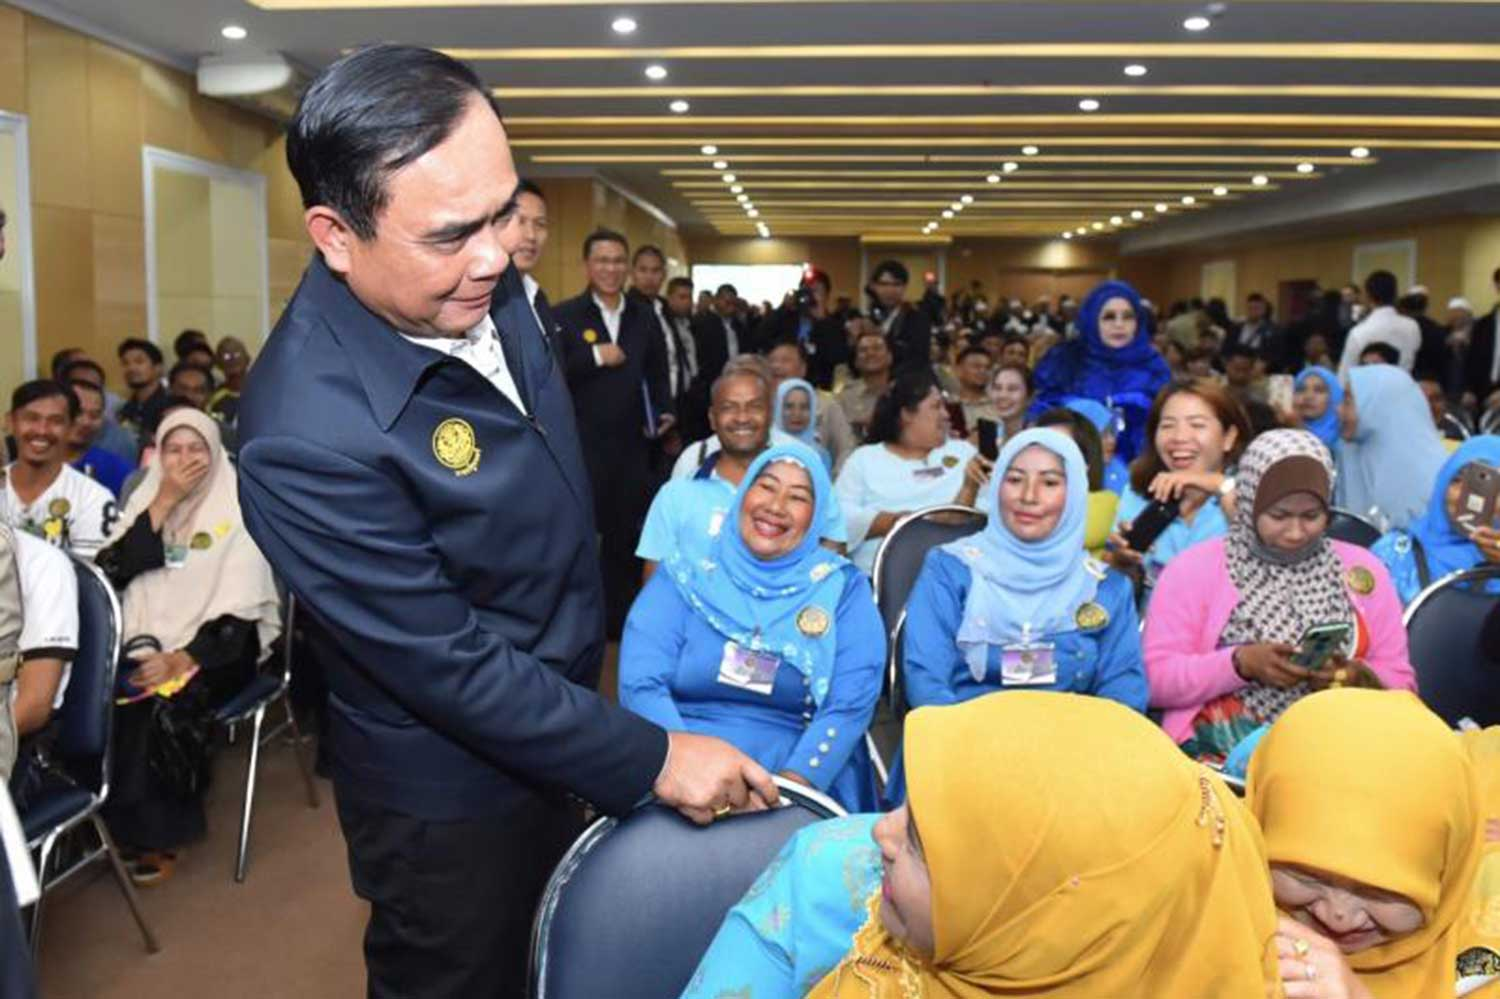 Prime Minister Prayut Chan-ocha greets local residents and officials during his visit to Yala on Wednesday. (Government House photo)